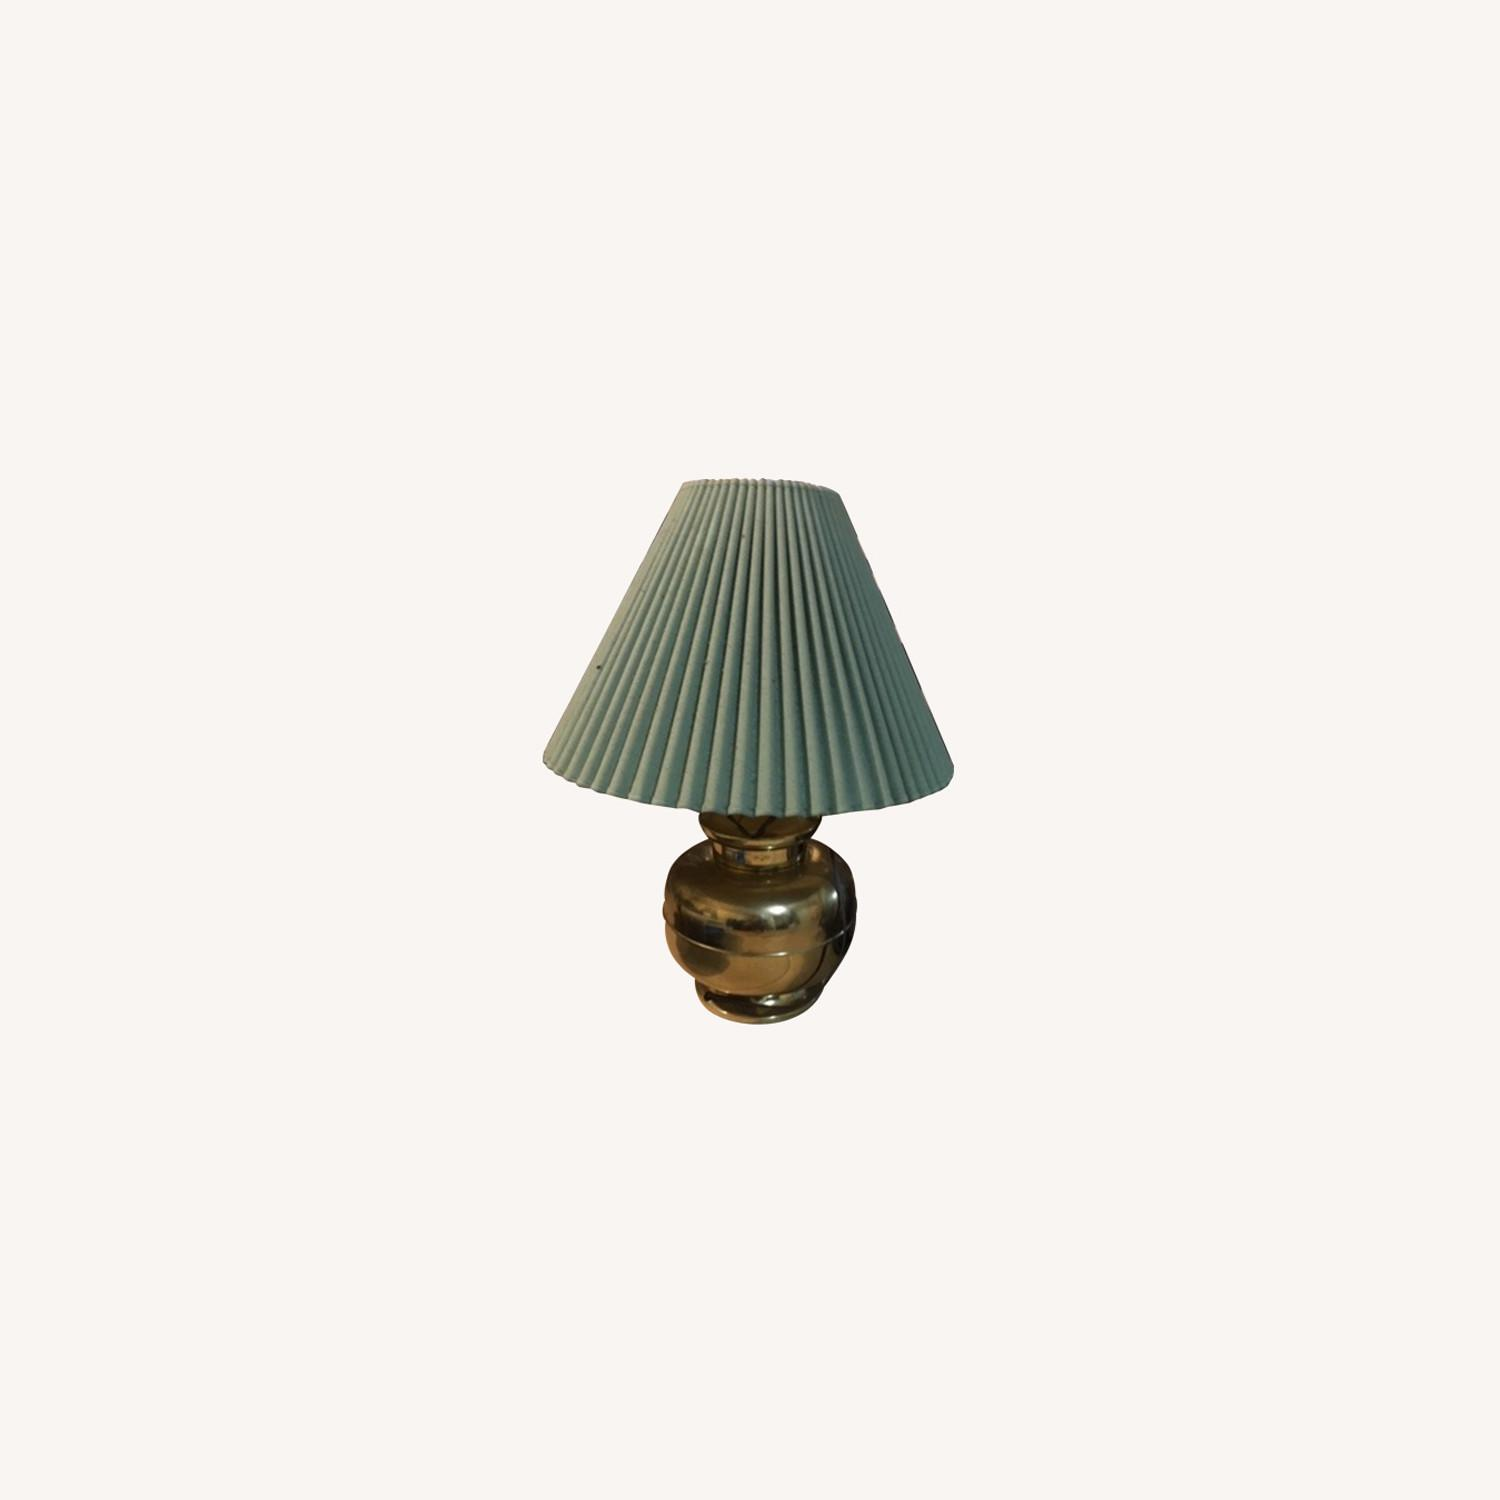 Anthropologie Vintage Table Lamp - image-0